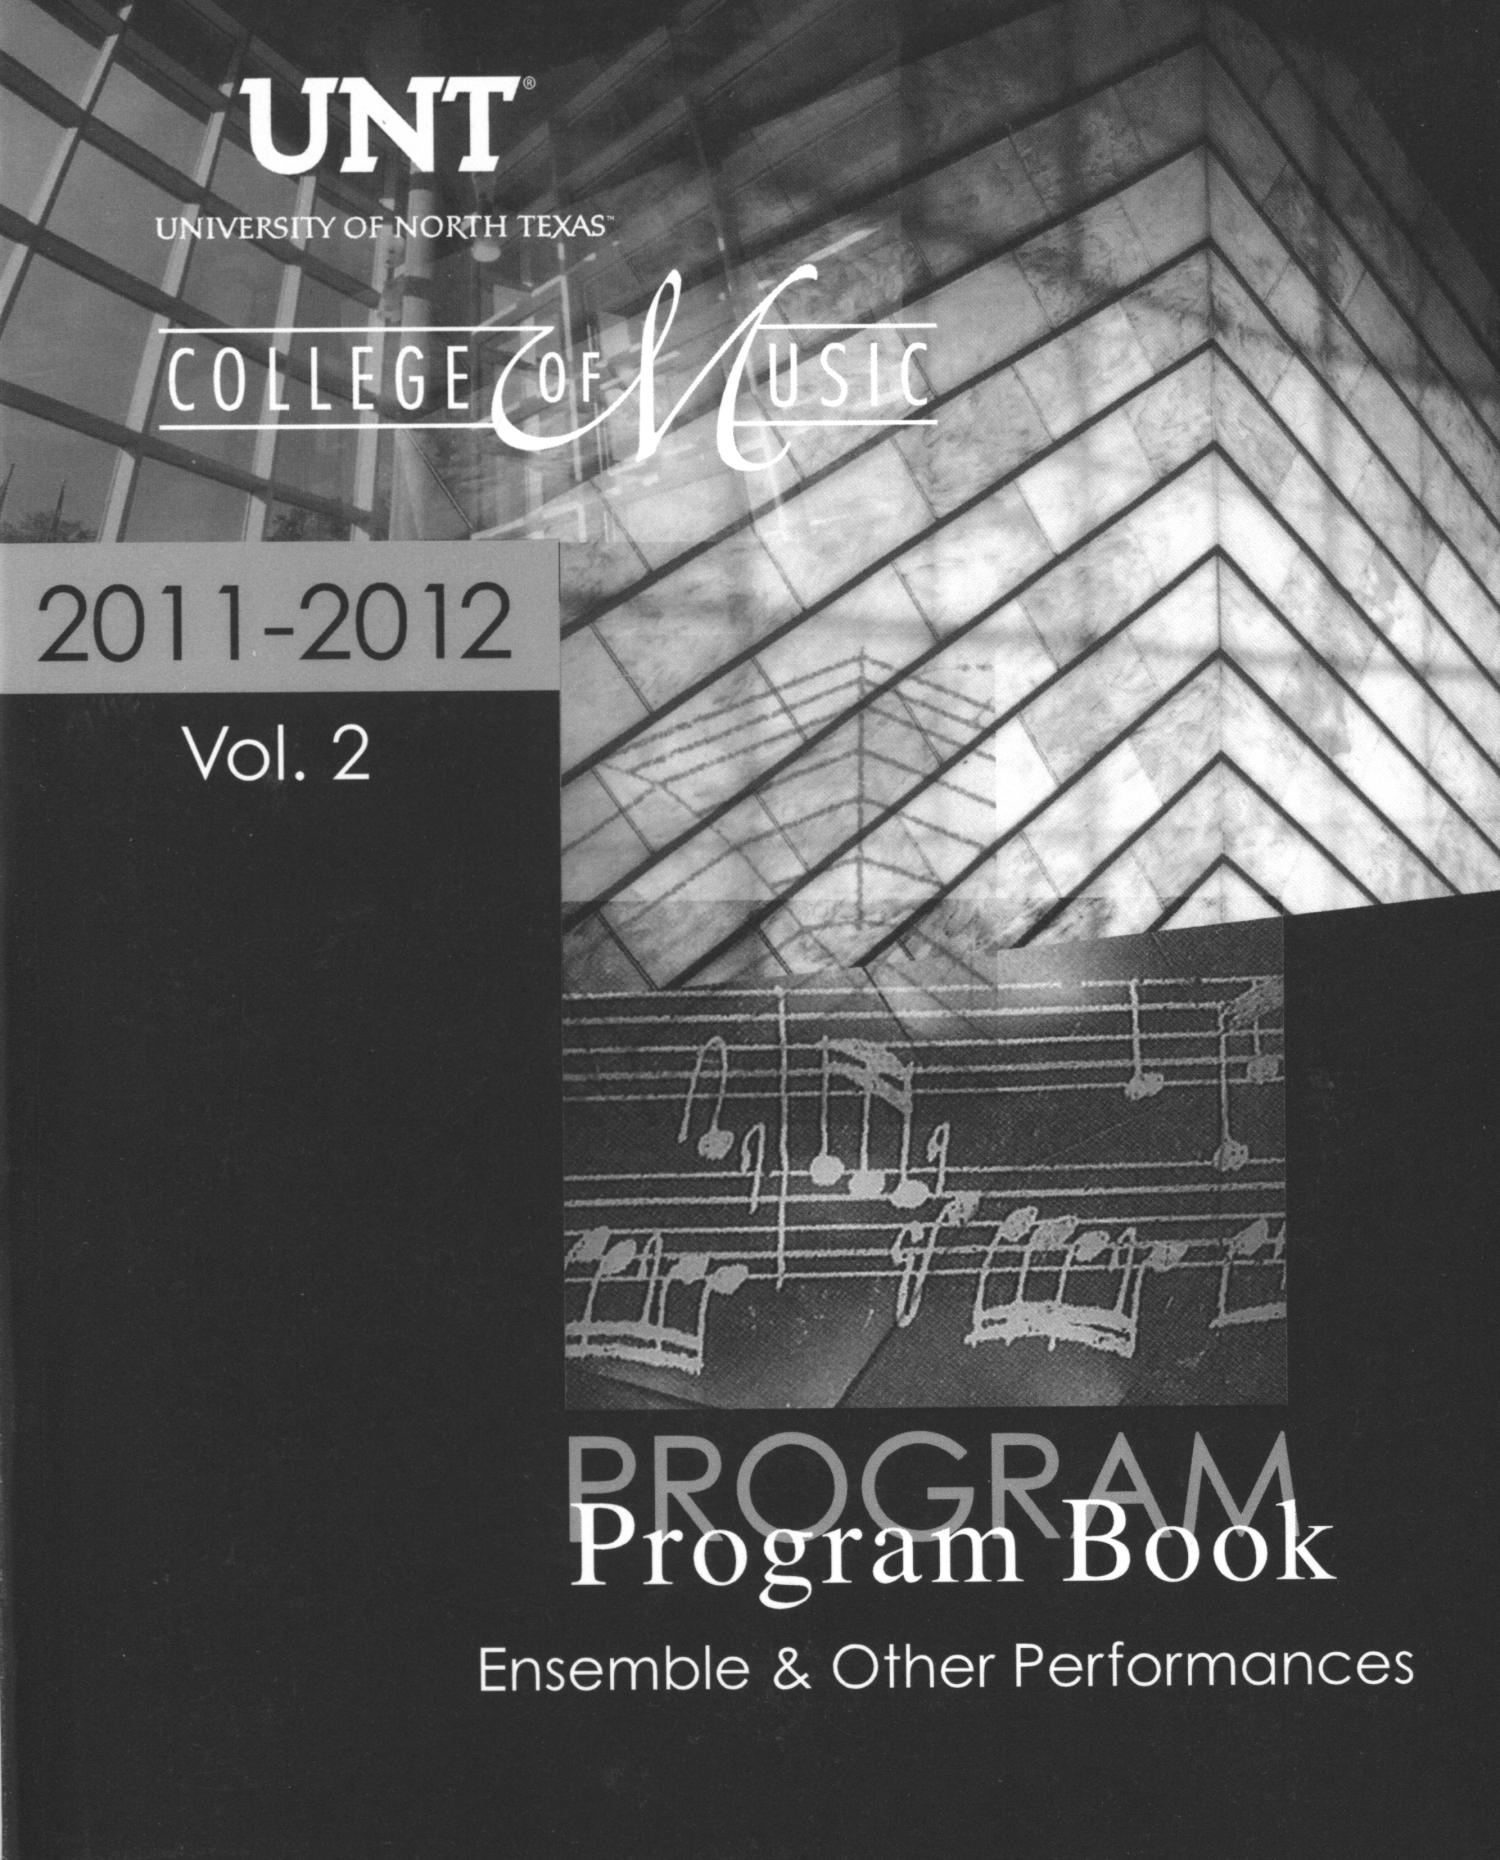 College of Music Program Book 2011-2012: Ensemble & Other Performances, Volume 2                                                                                                      Front Cover